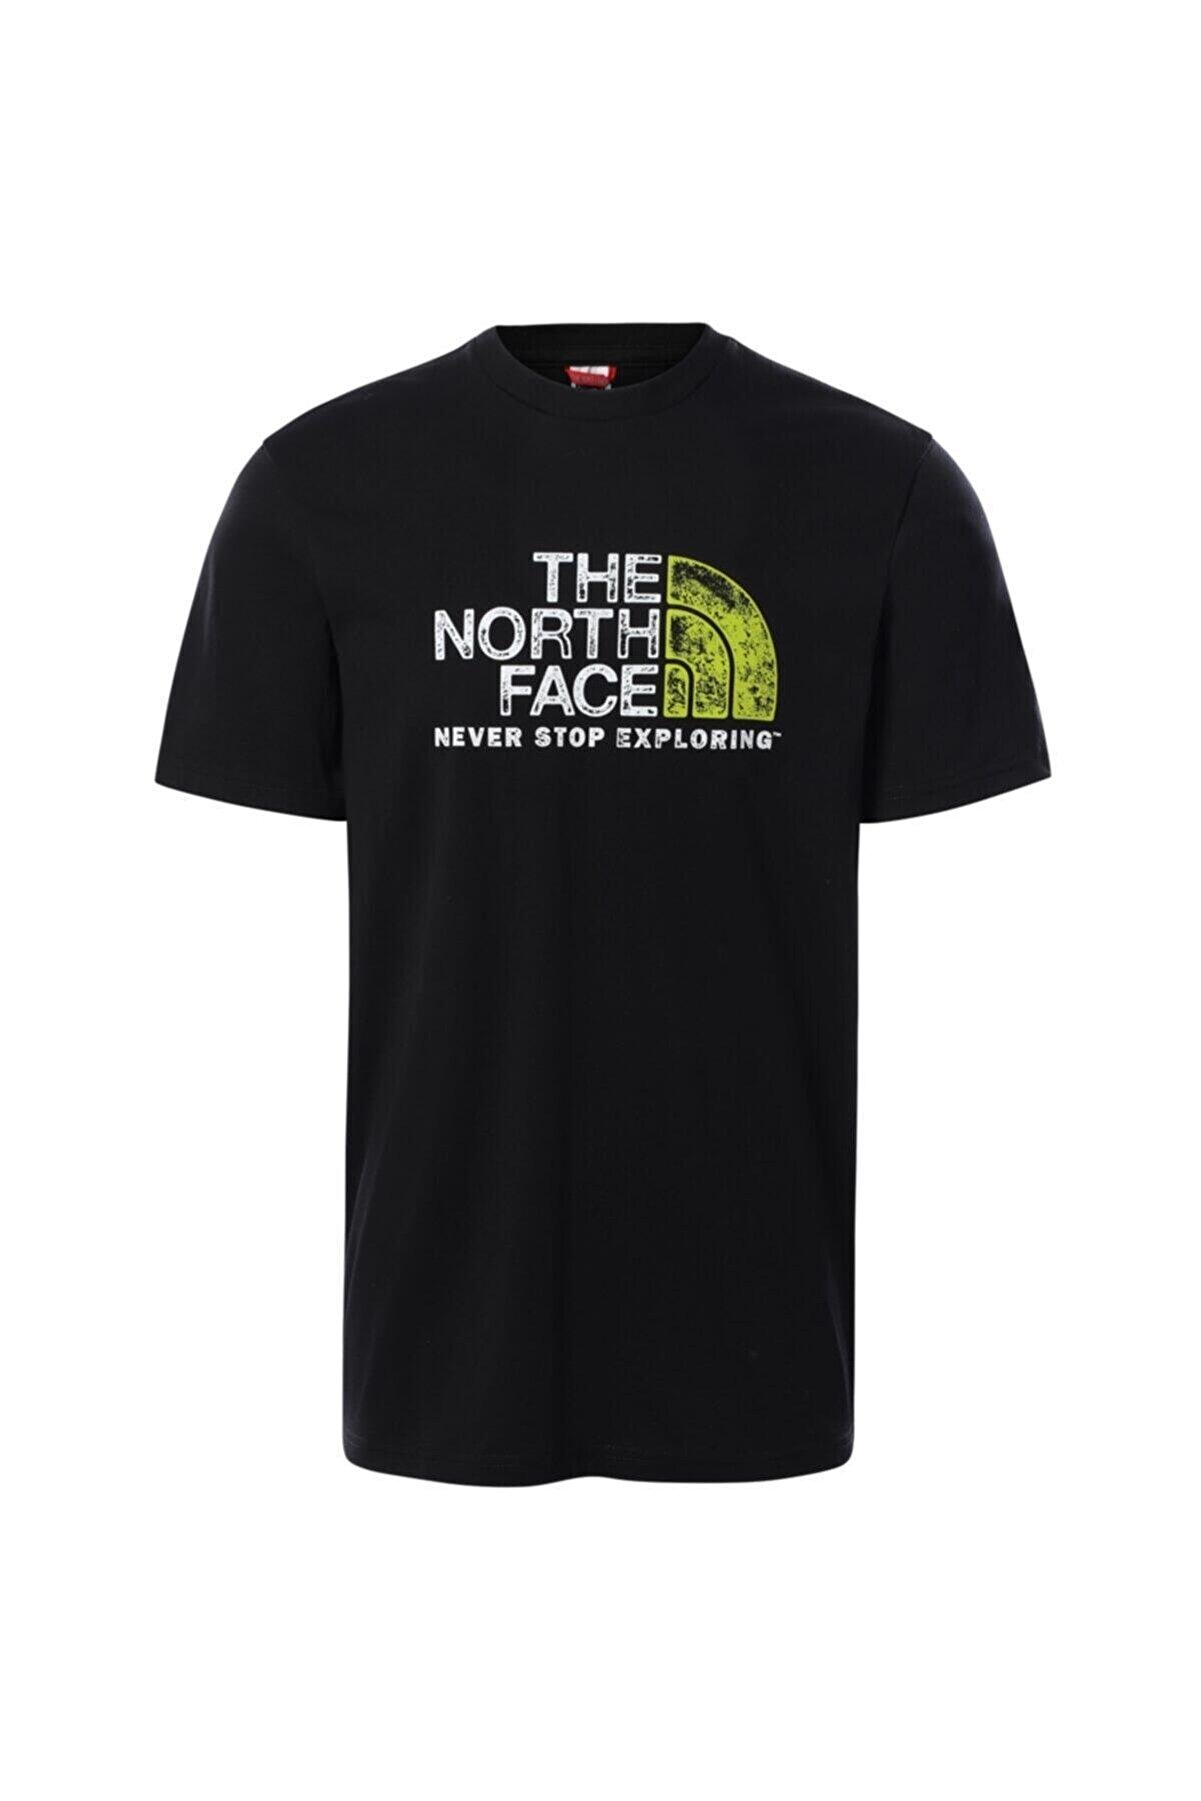 The North Face M S/s Rust 2 Tee Nf0a4m68ky41